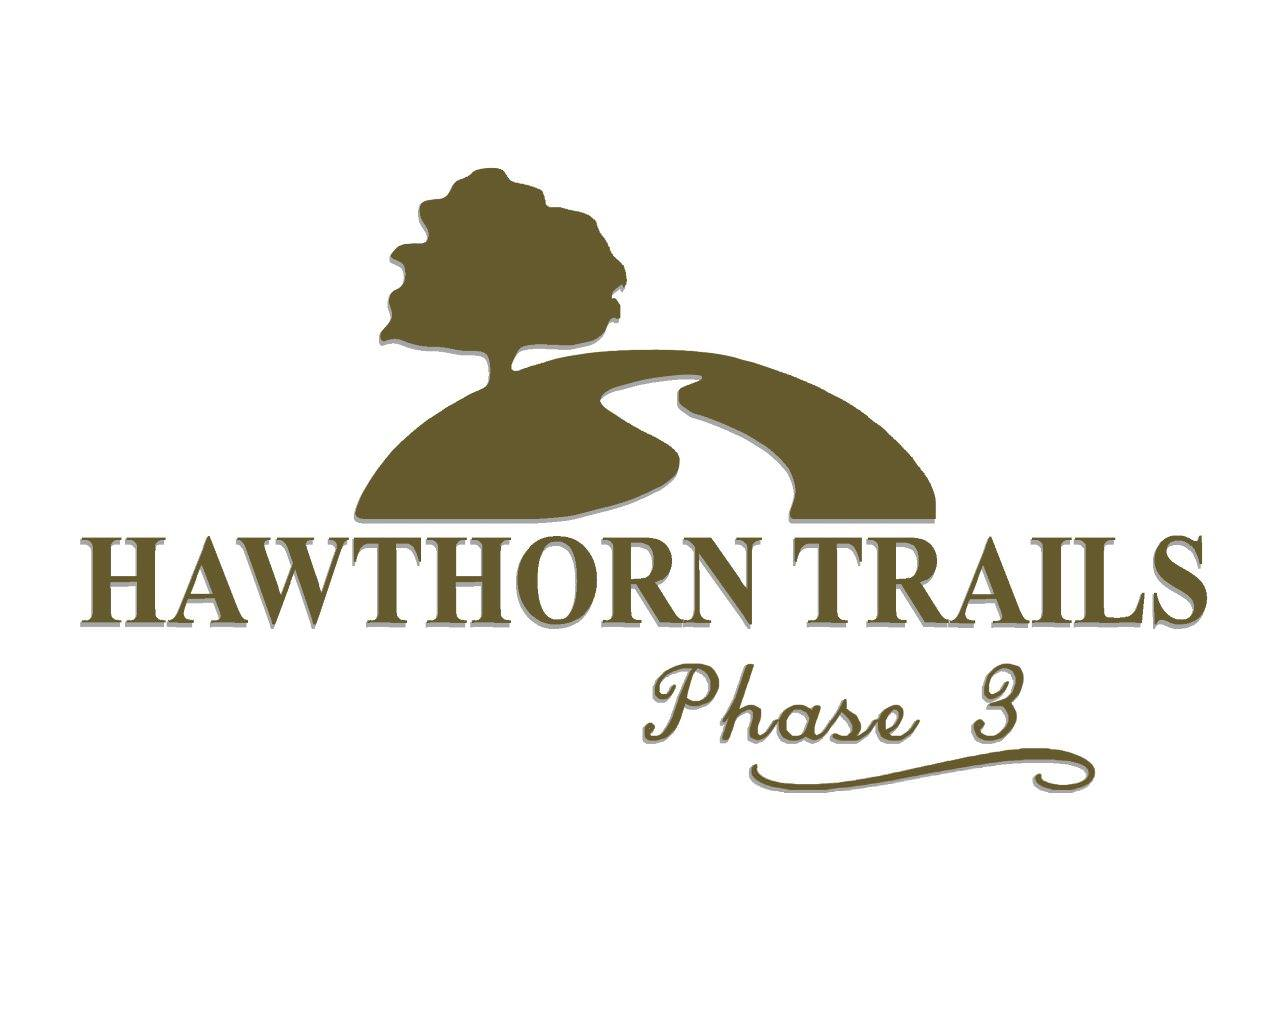 Hawthorn Trails Adds to List of Safest Communities in the Greater Chicago Area